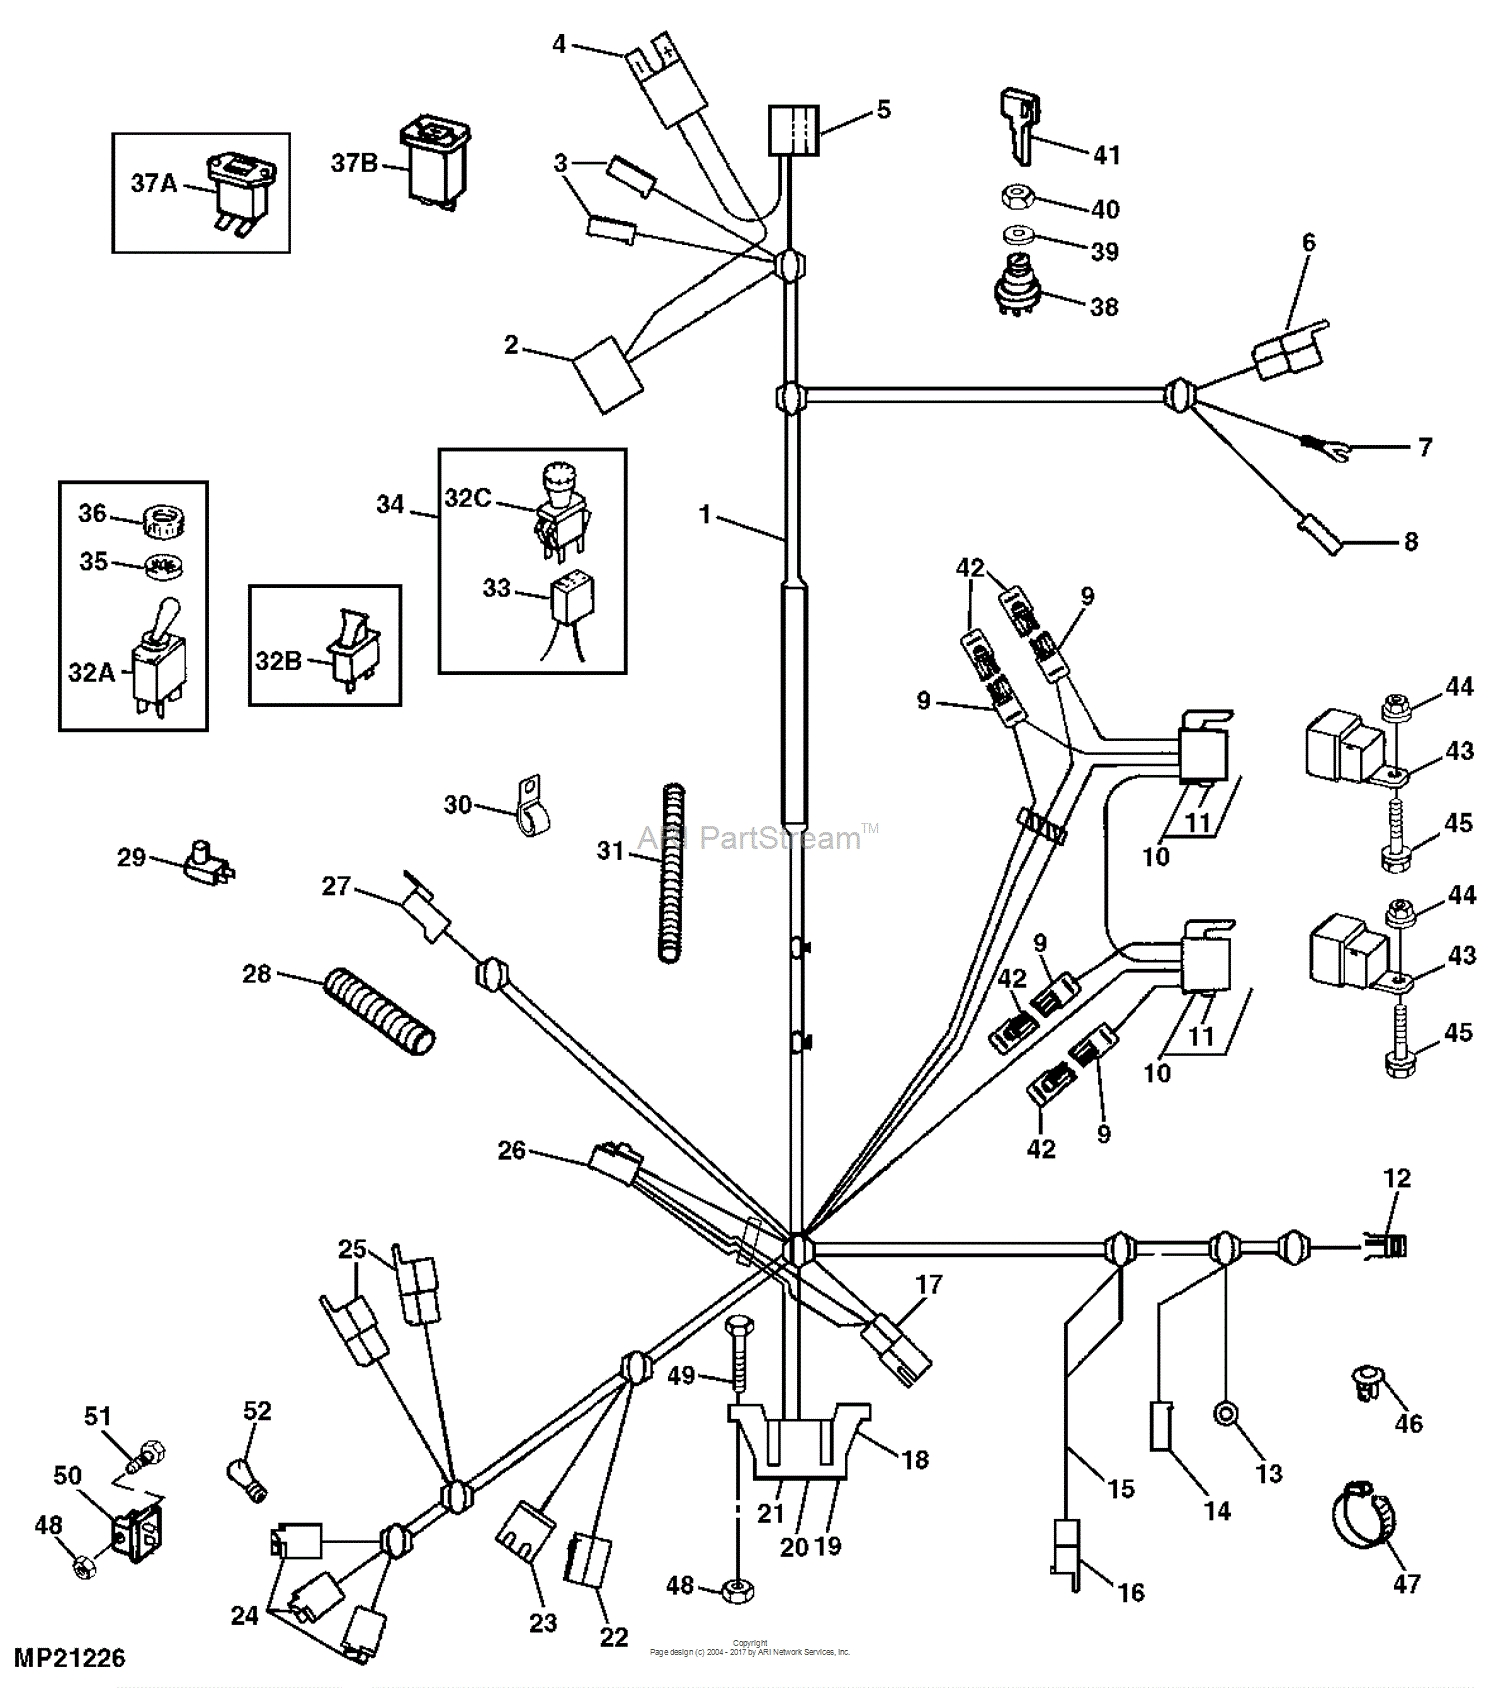 hight resolution of john deere stx46 wiring diagram wiring diagram databasejohn deere la125 wiring diagram 19